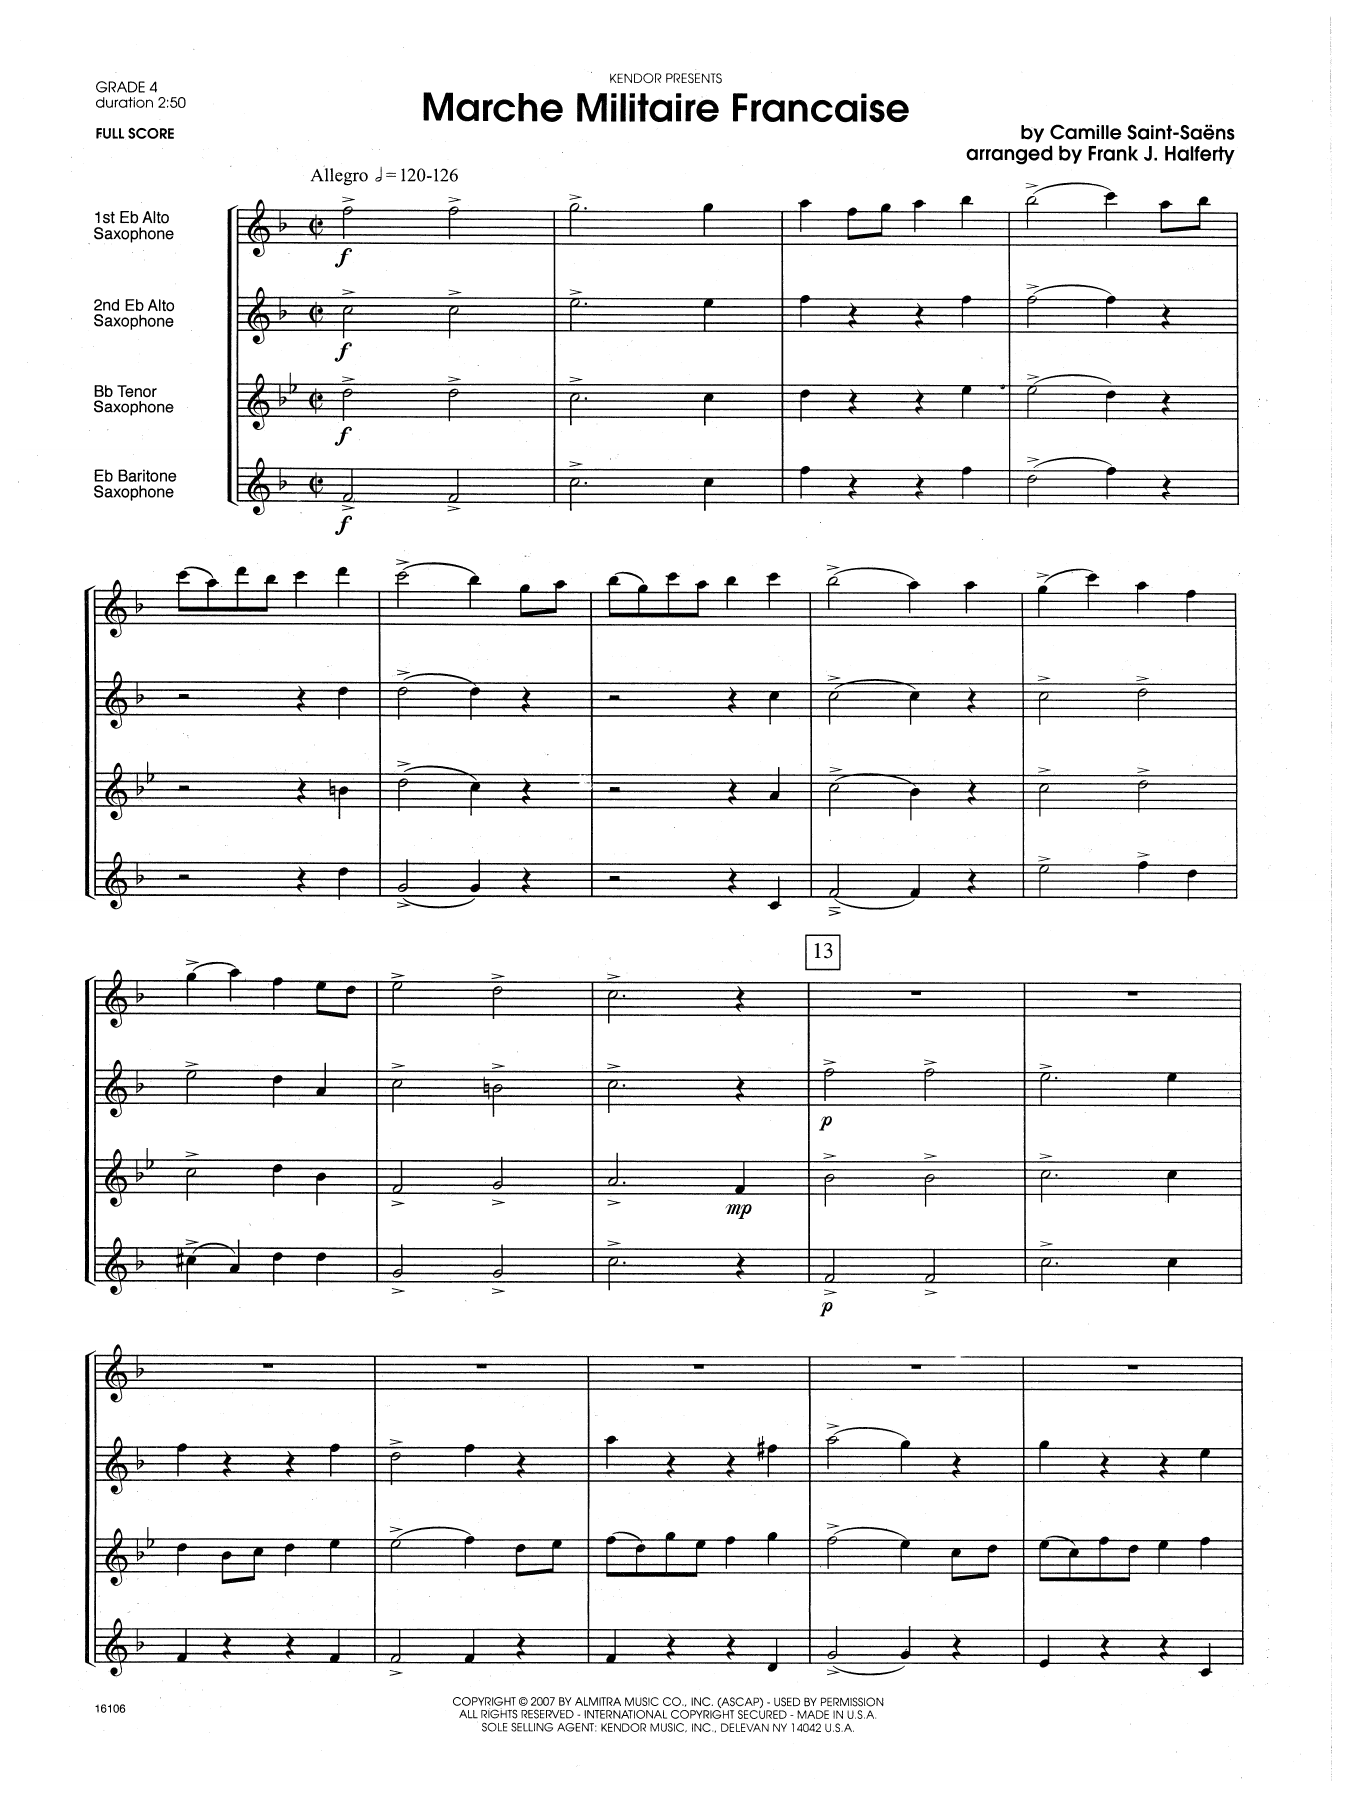 Marche Militaire Francaise (COMPLETE) sheet music for saxophone quartet by Frank J. Halferty and Camille Saint-Saens. Score Image Preview.